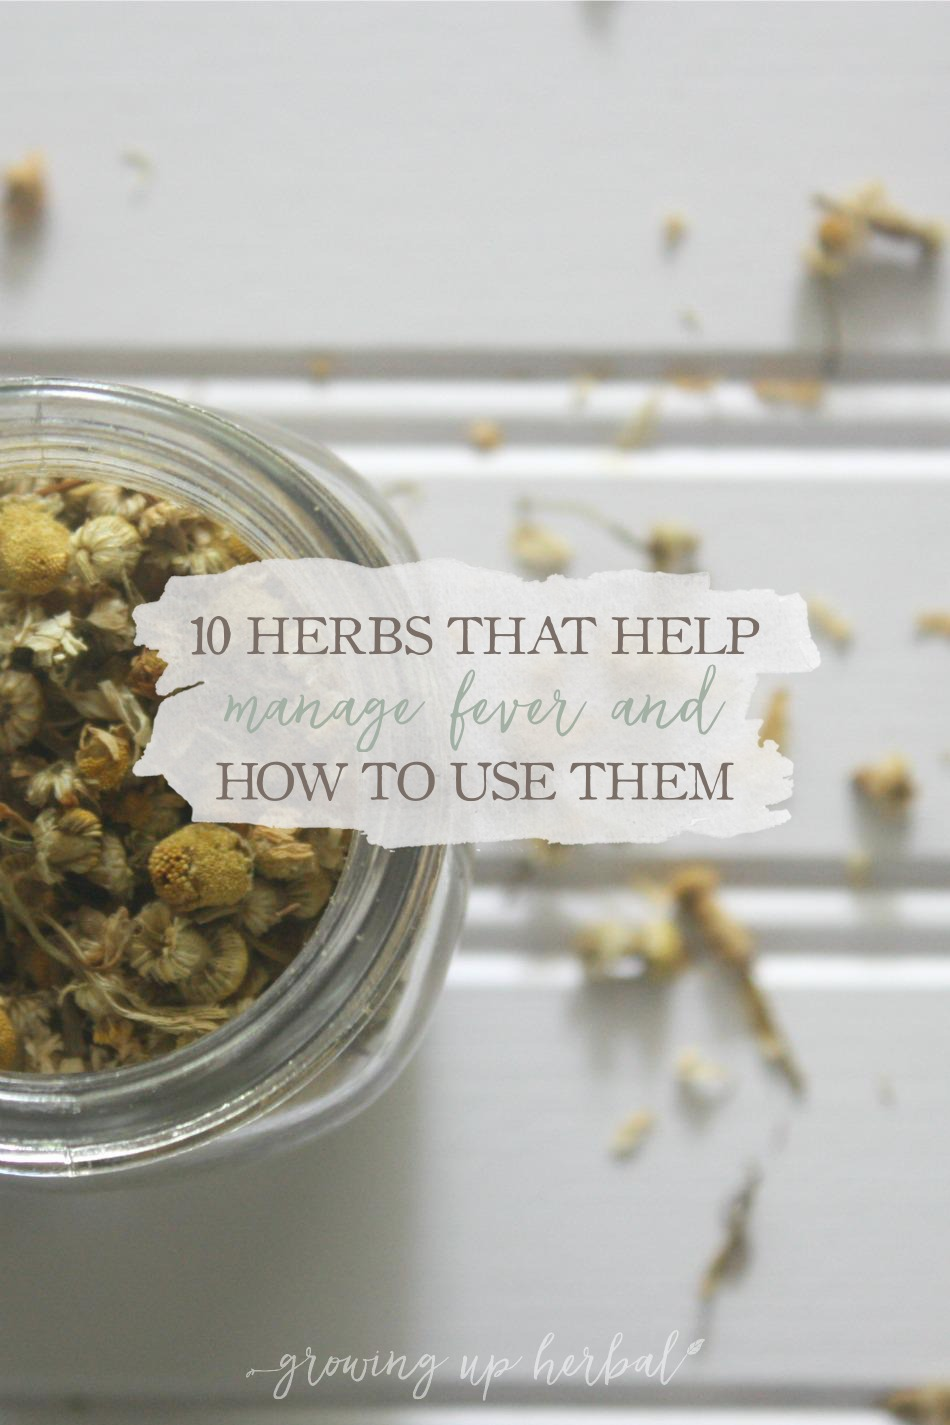 10 Herbs That Help Manage Fever & How To Use Them | Growing Up Herbal | Looking for ways to manage a fever with herbs? Here are 10 herbs to look into!